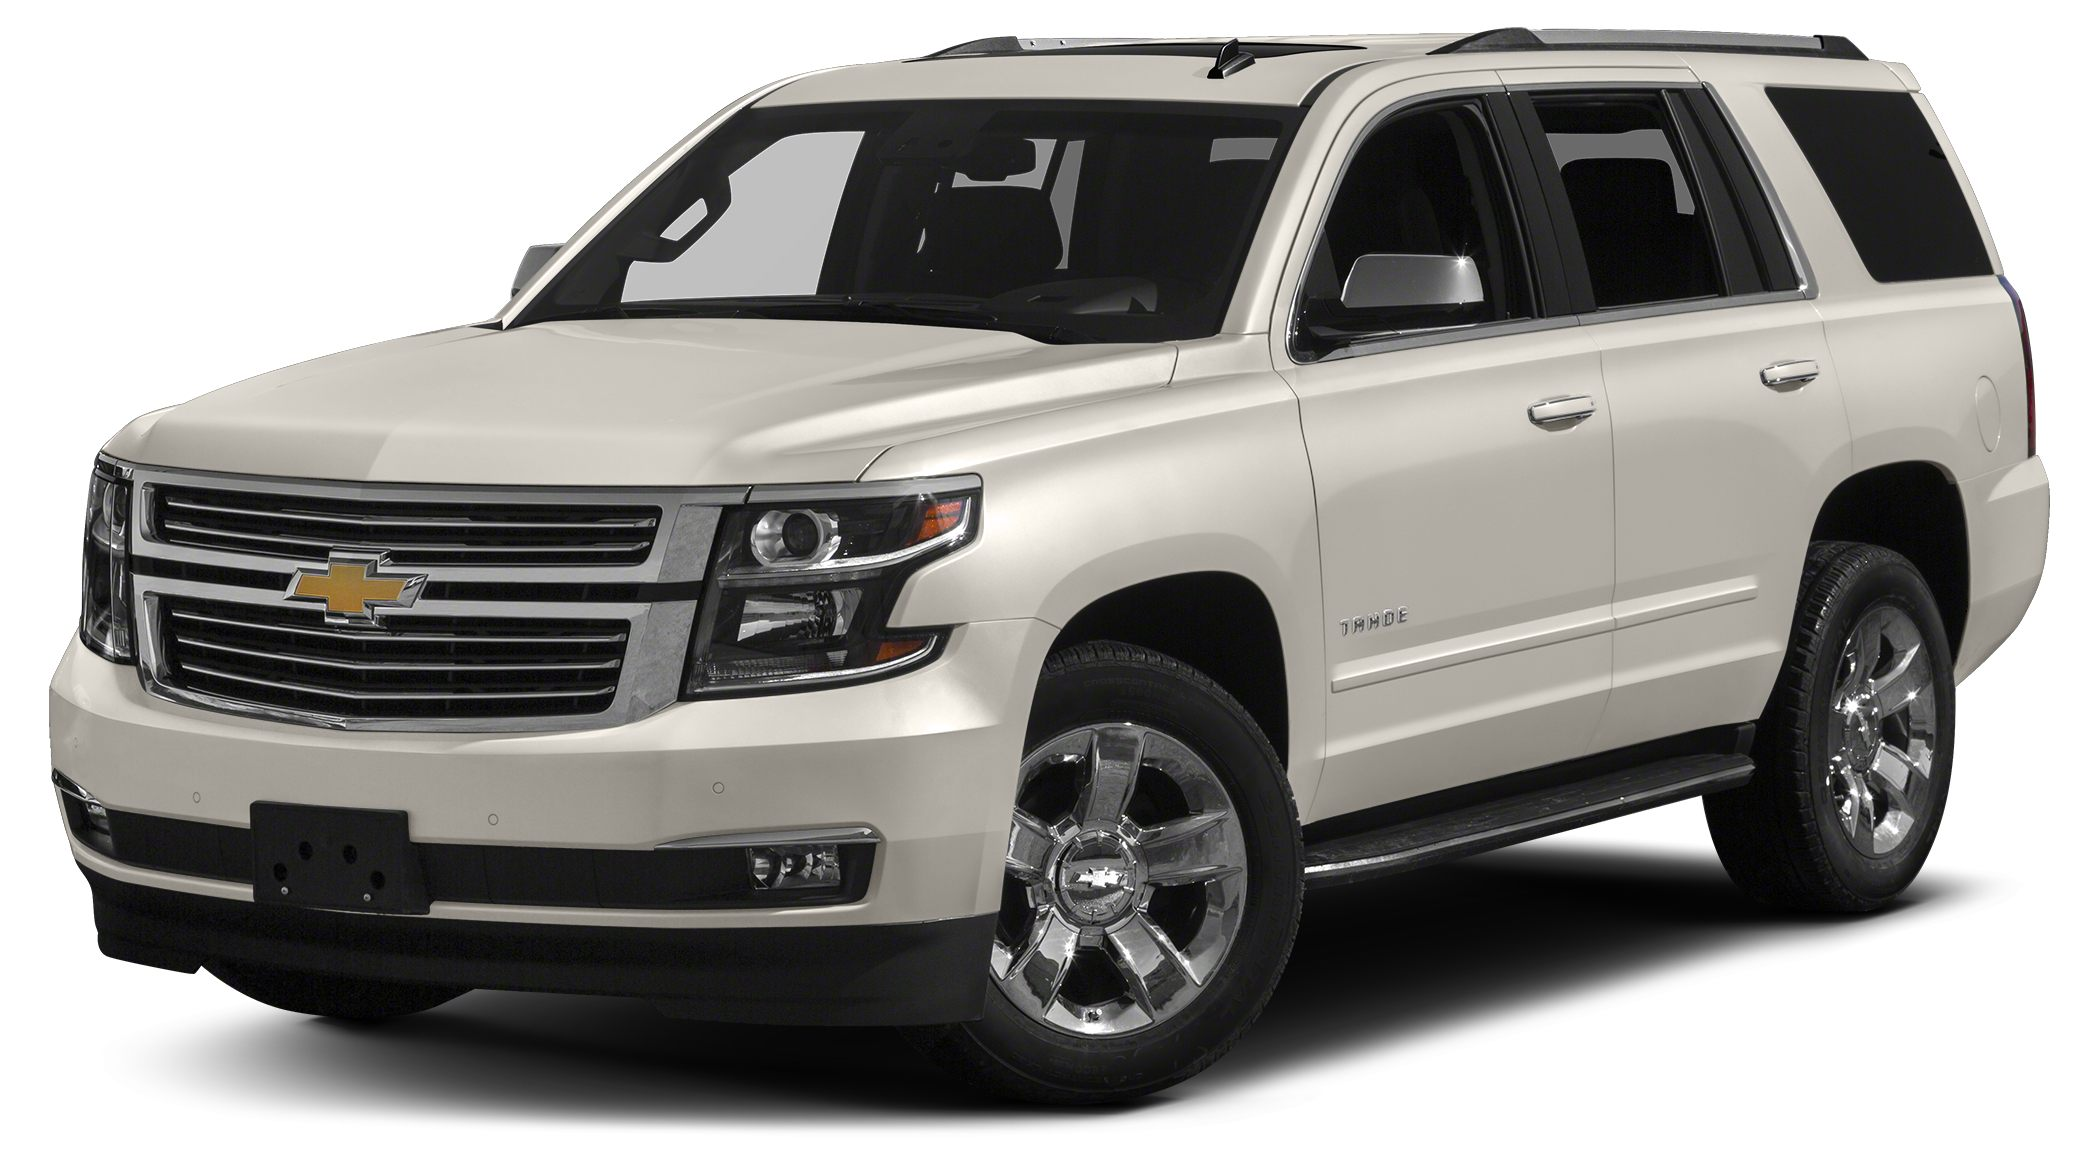 2015 Chevrolet Tahoe LTZ Body Security Content Theft Protection Package Theft-Deterrent Alarm Sys